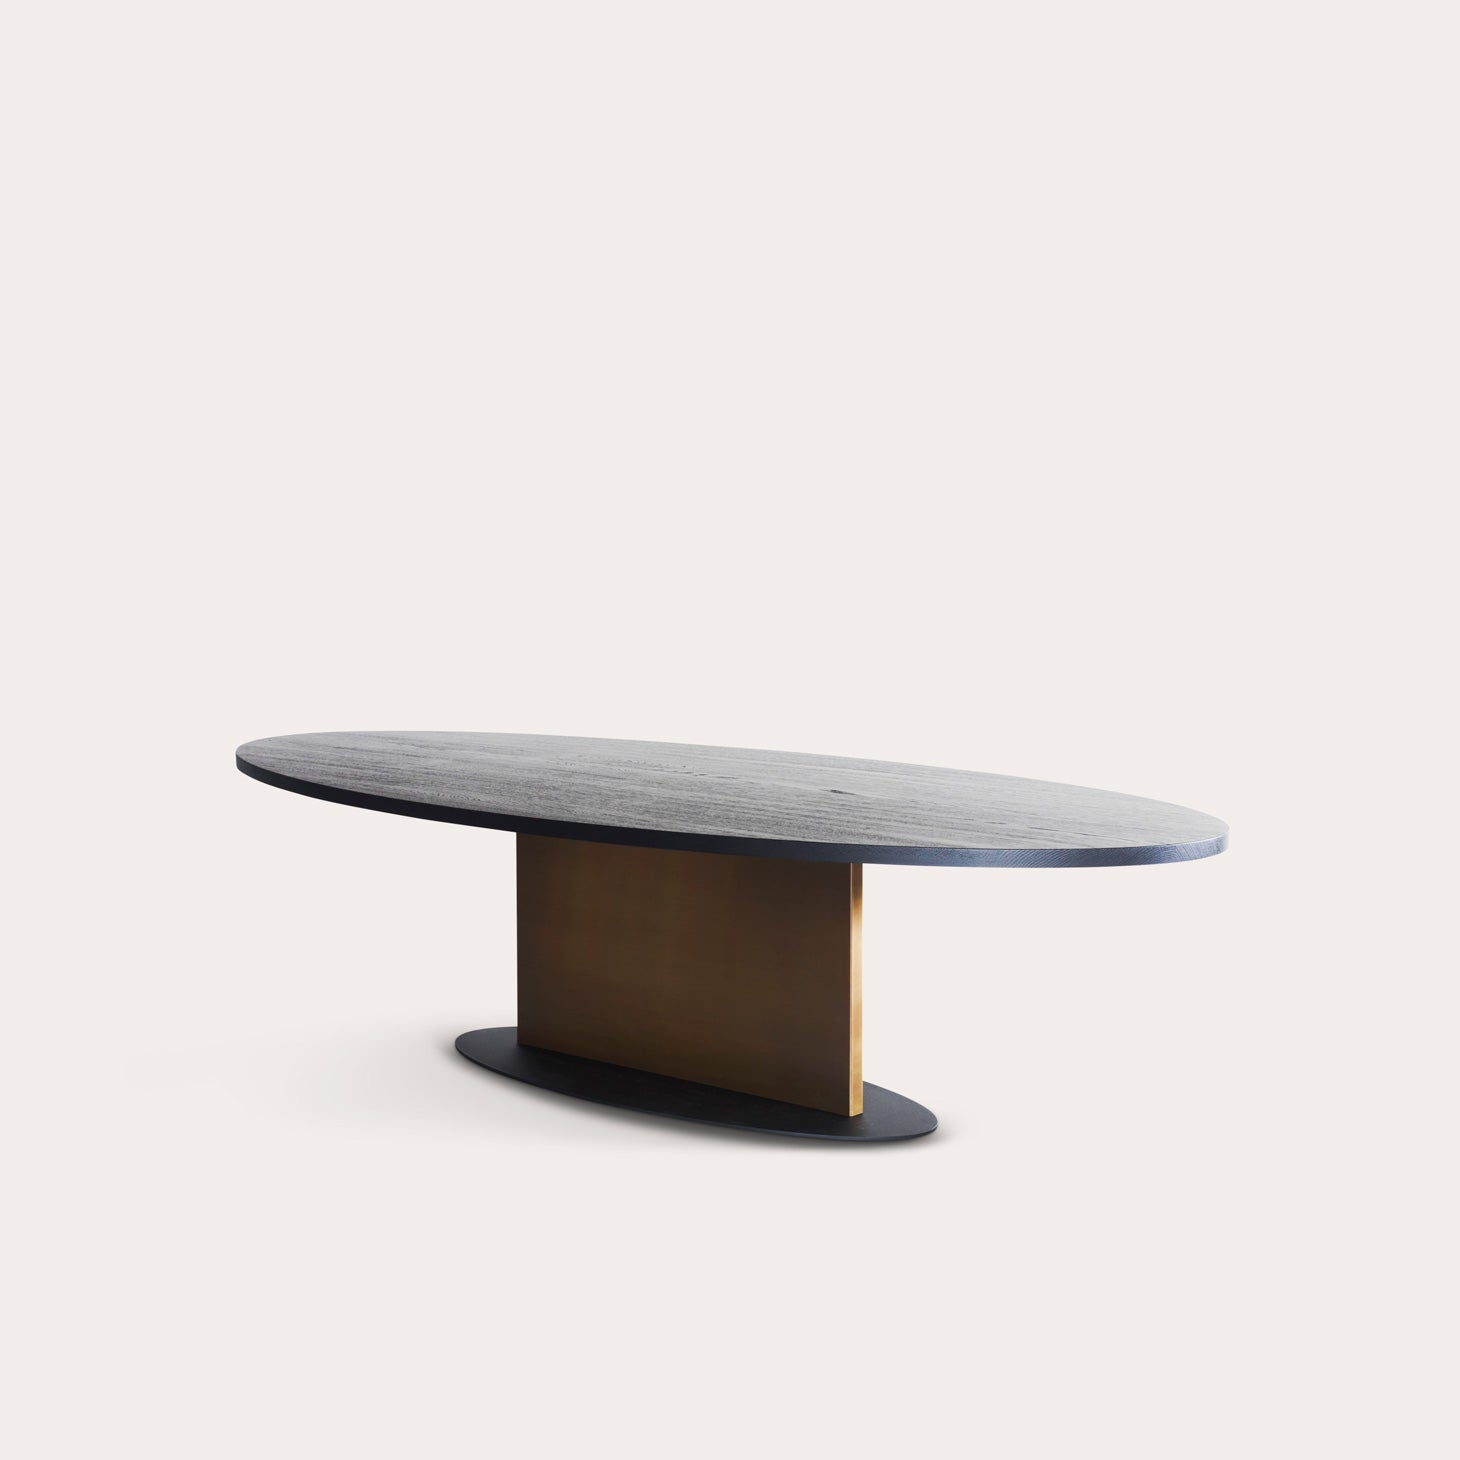 Opium Oval Dining Table Tables Marlieke Van Rossum Designer Furniture Sku: 416-230-10286